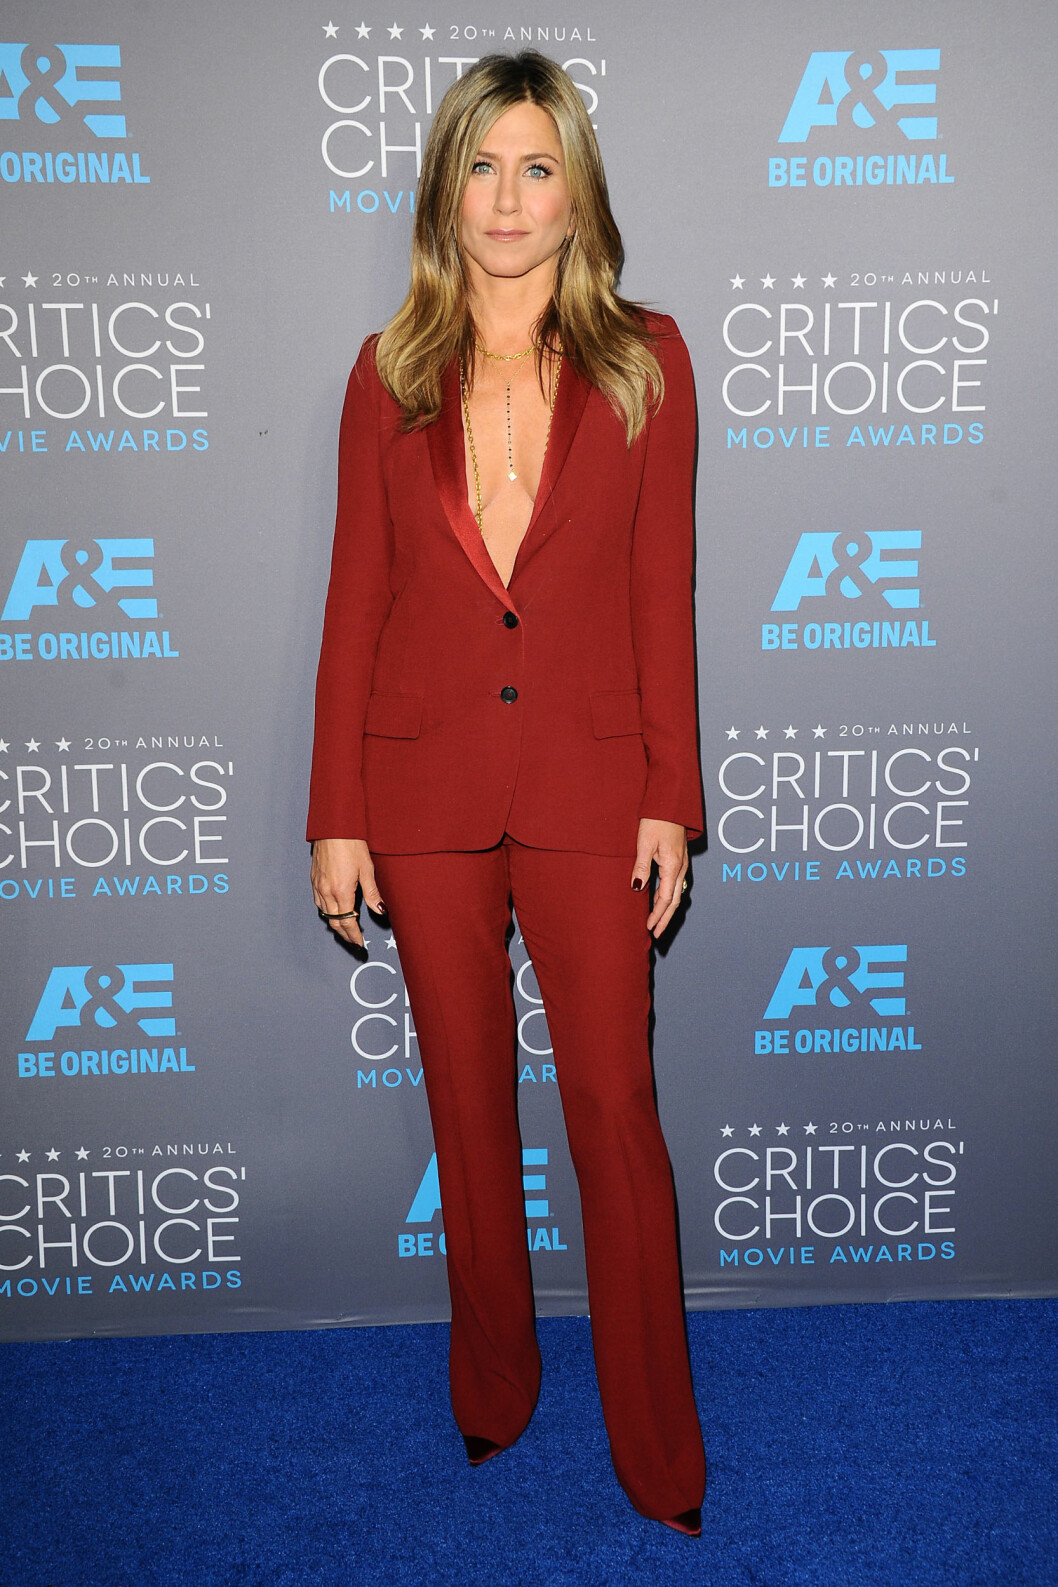 RØDT: Jennifer Aniston valgte en rød dress og droppet skjorten under Annual Critics Choise Awards. Og det funker så bra! Foto: Kyle Rover/startraksphoto.com/Al